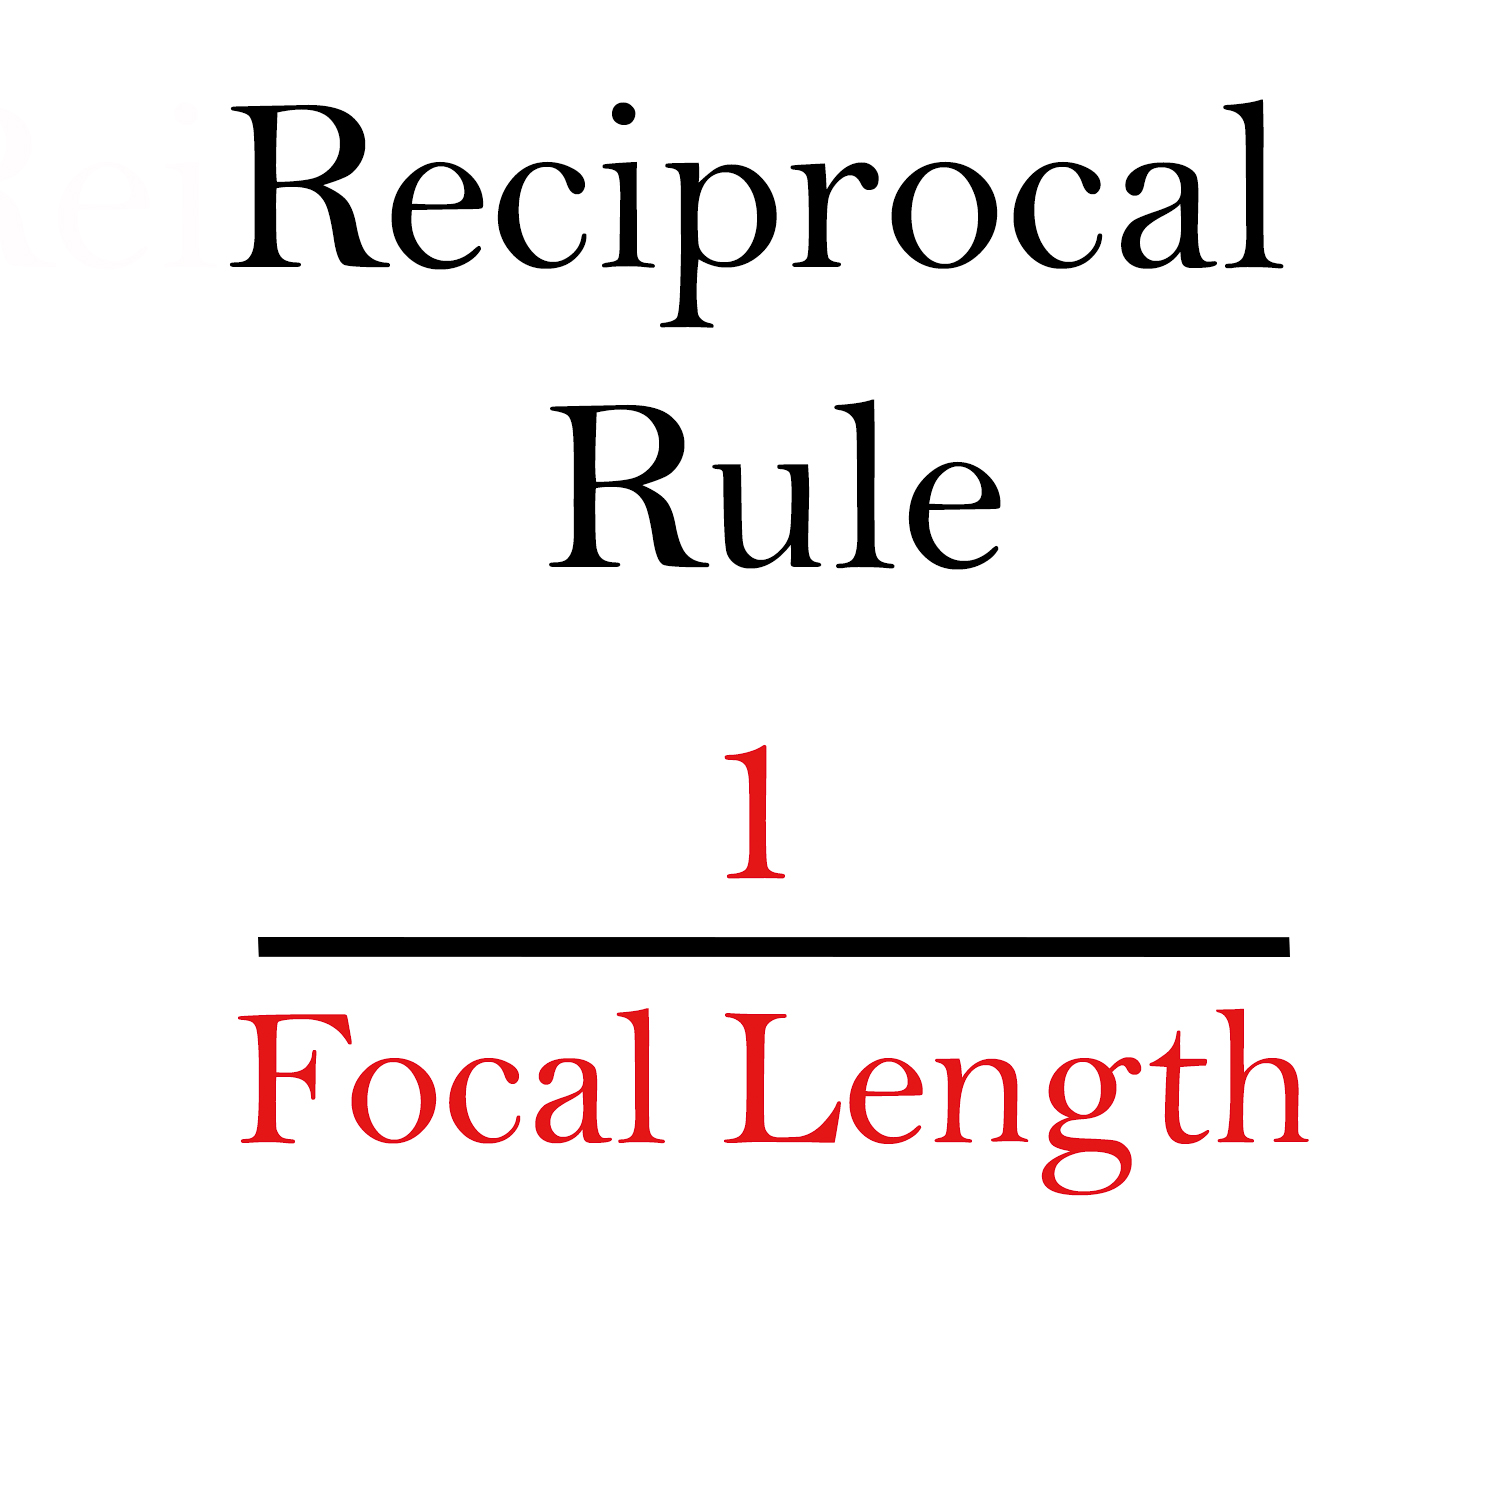 Reciprocal Rule in photography formula